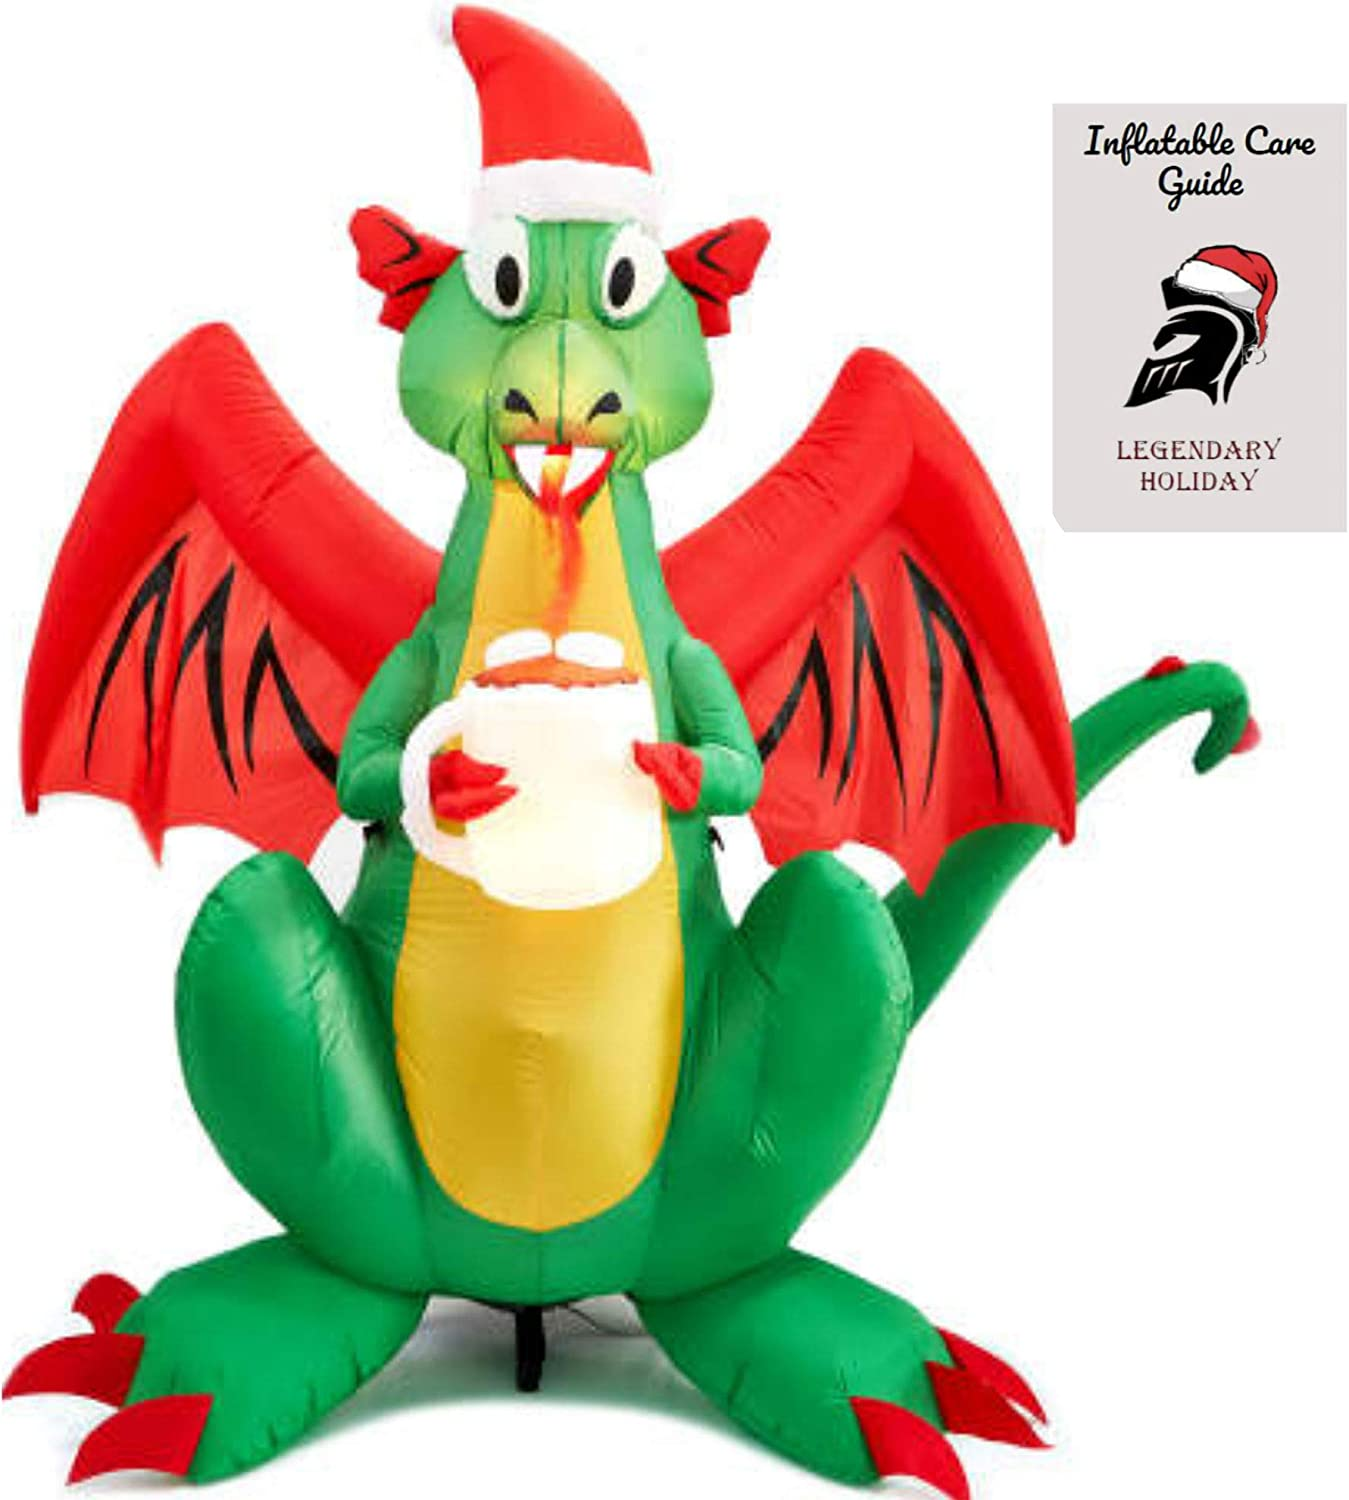 Christmas Fire Breathing Dragon Inflatable 6 ft Inflatable Care Guide